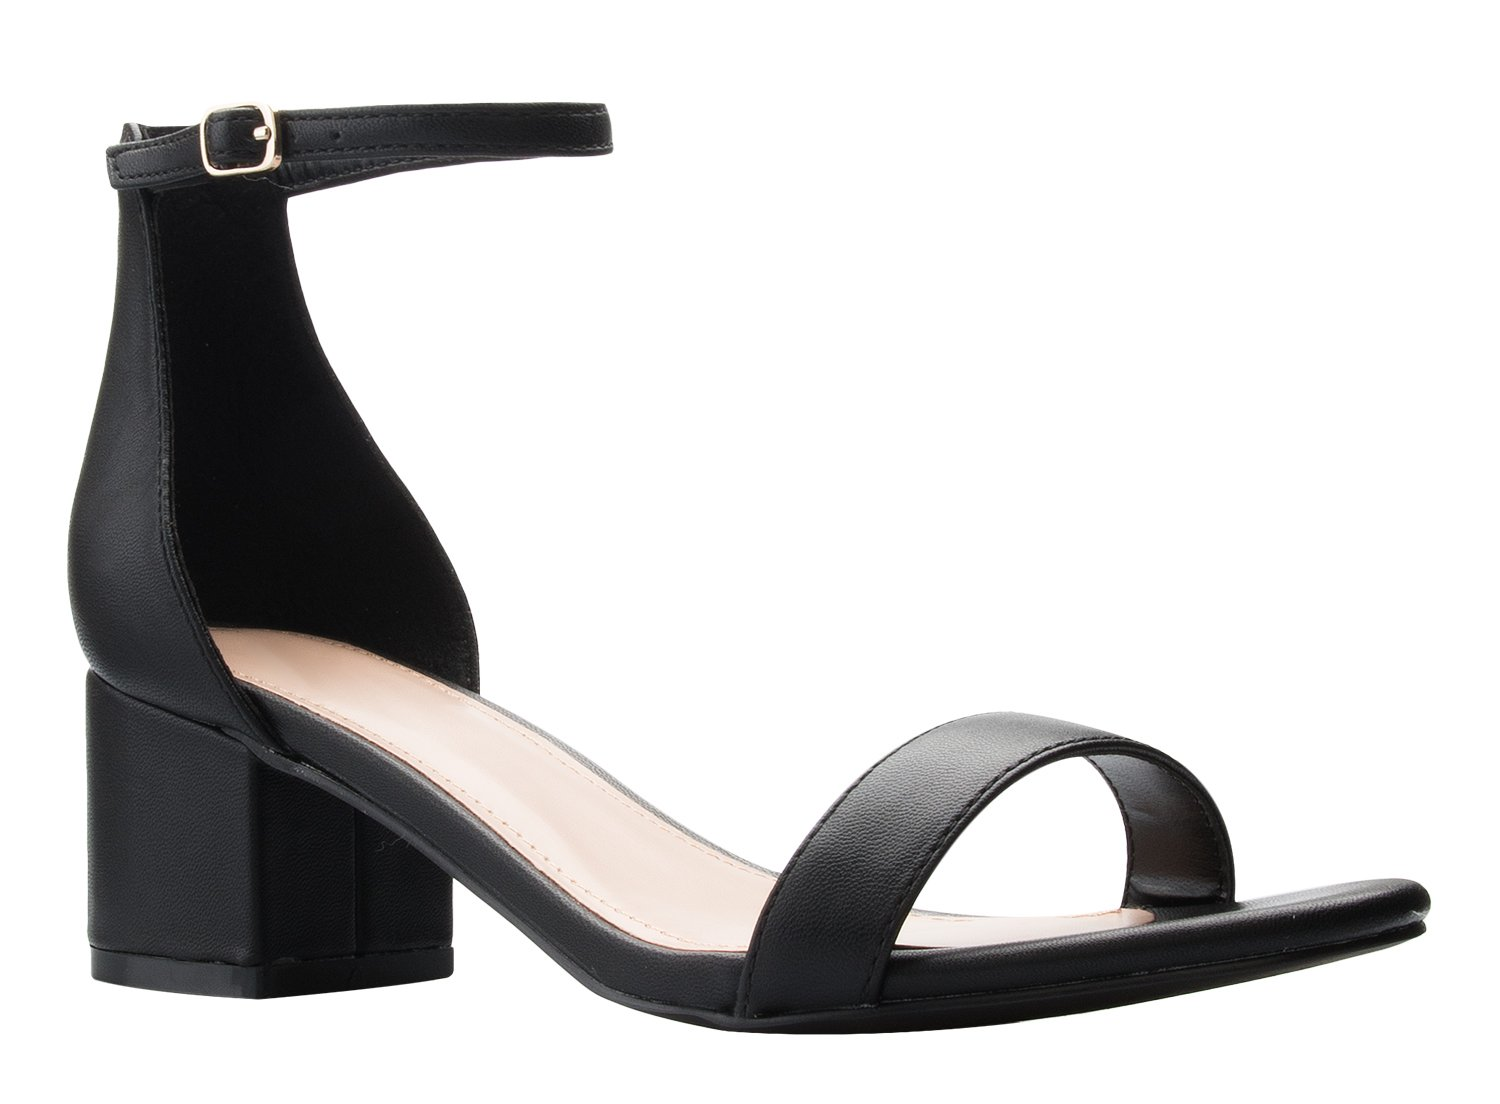 OLIVIA K Women's Ankle Strap Kitten Heel – Adorable Low Block Heel,Black Pu,8.5 B(M) US by OLIVIA K (Image #1)